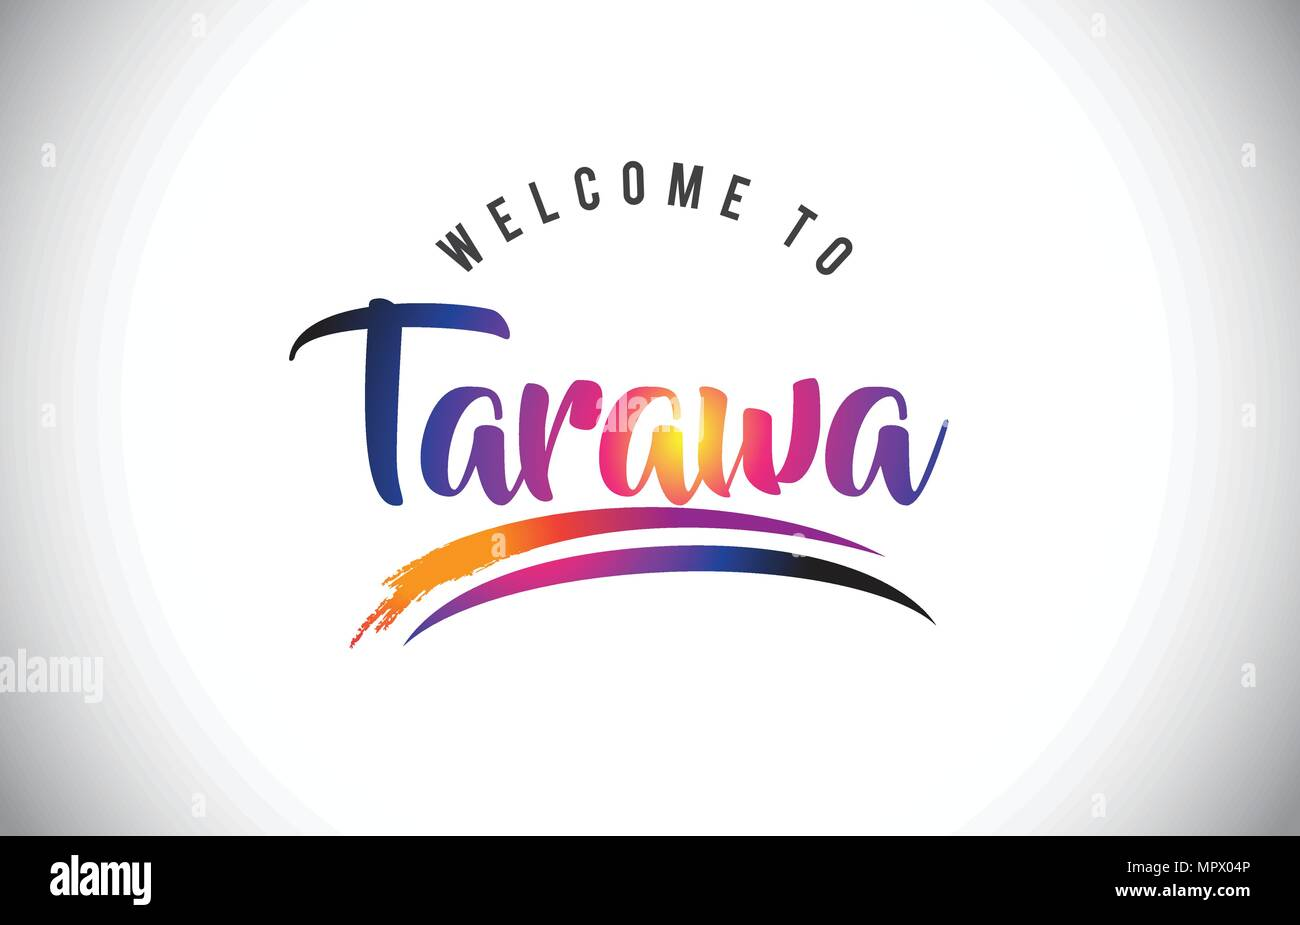 Tarawa Welcome To Message in Purple Vibrant Modern Colors Vector Illustration. - Stock Image